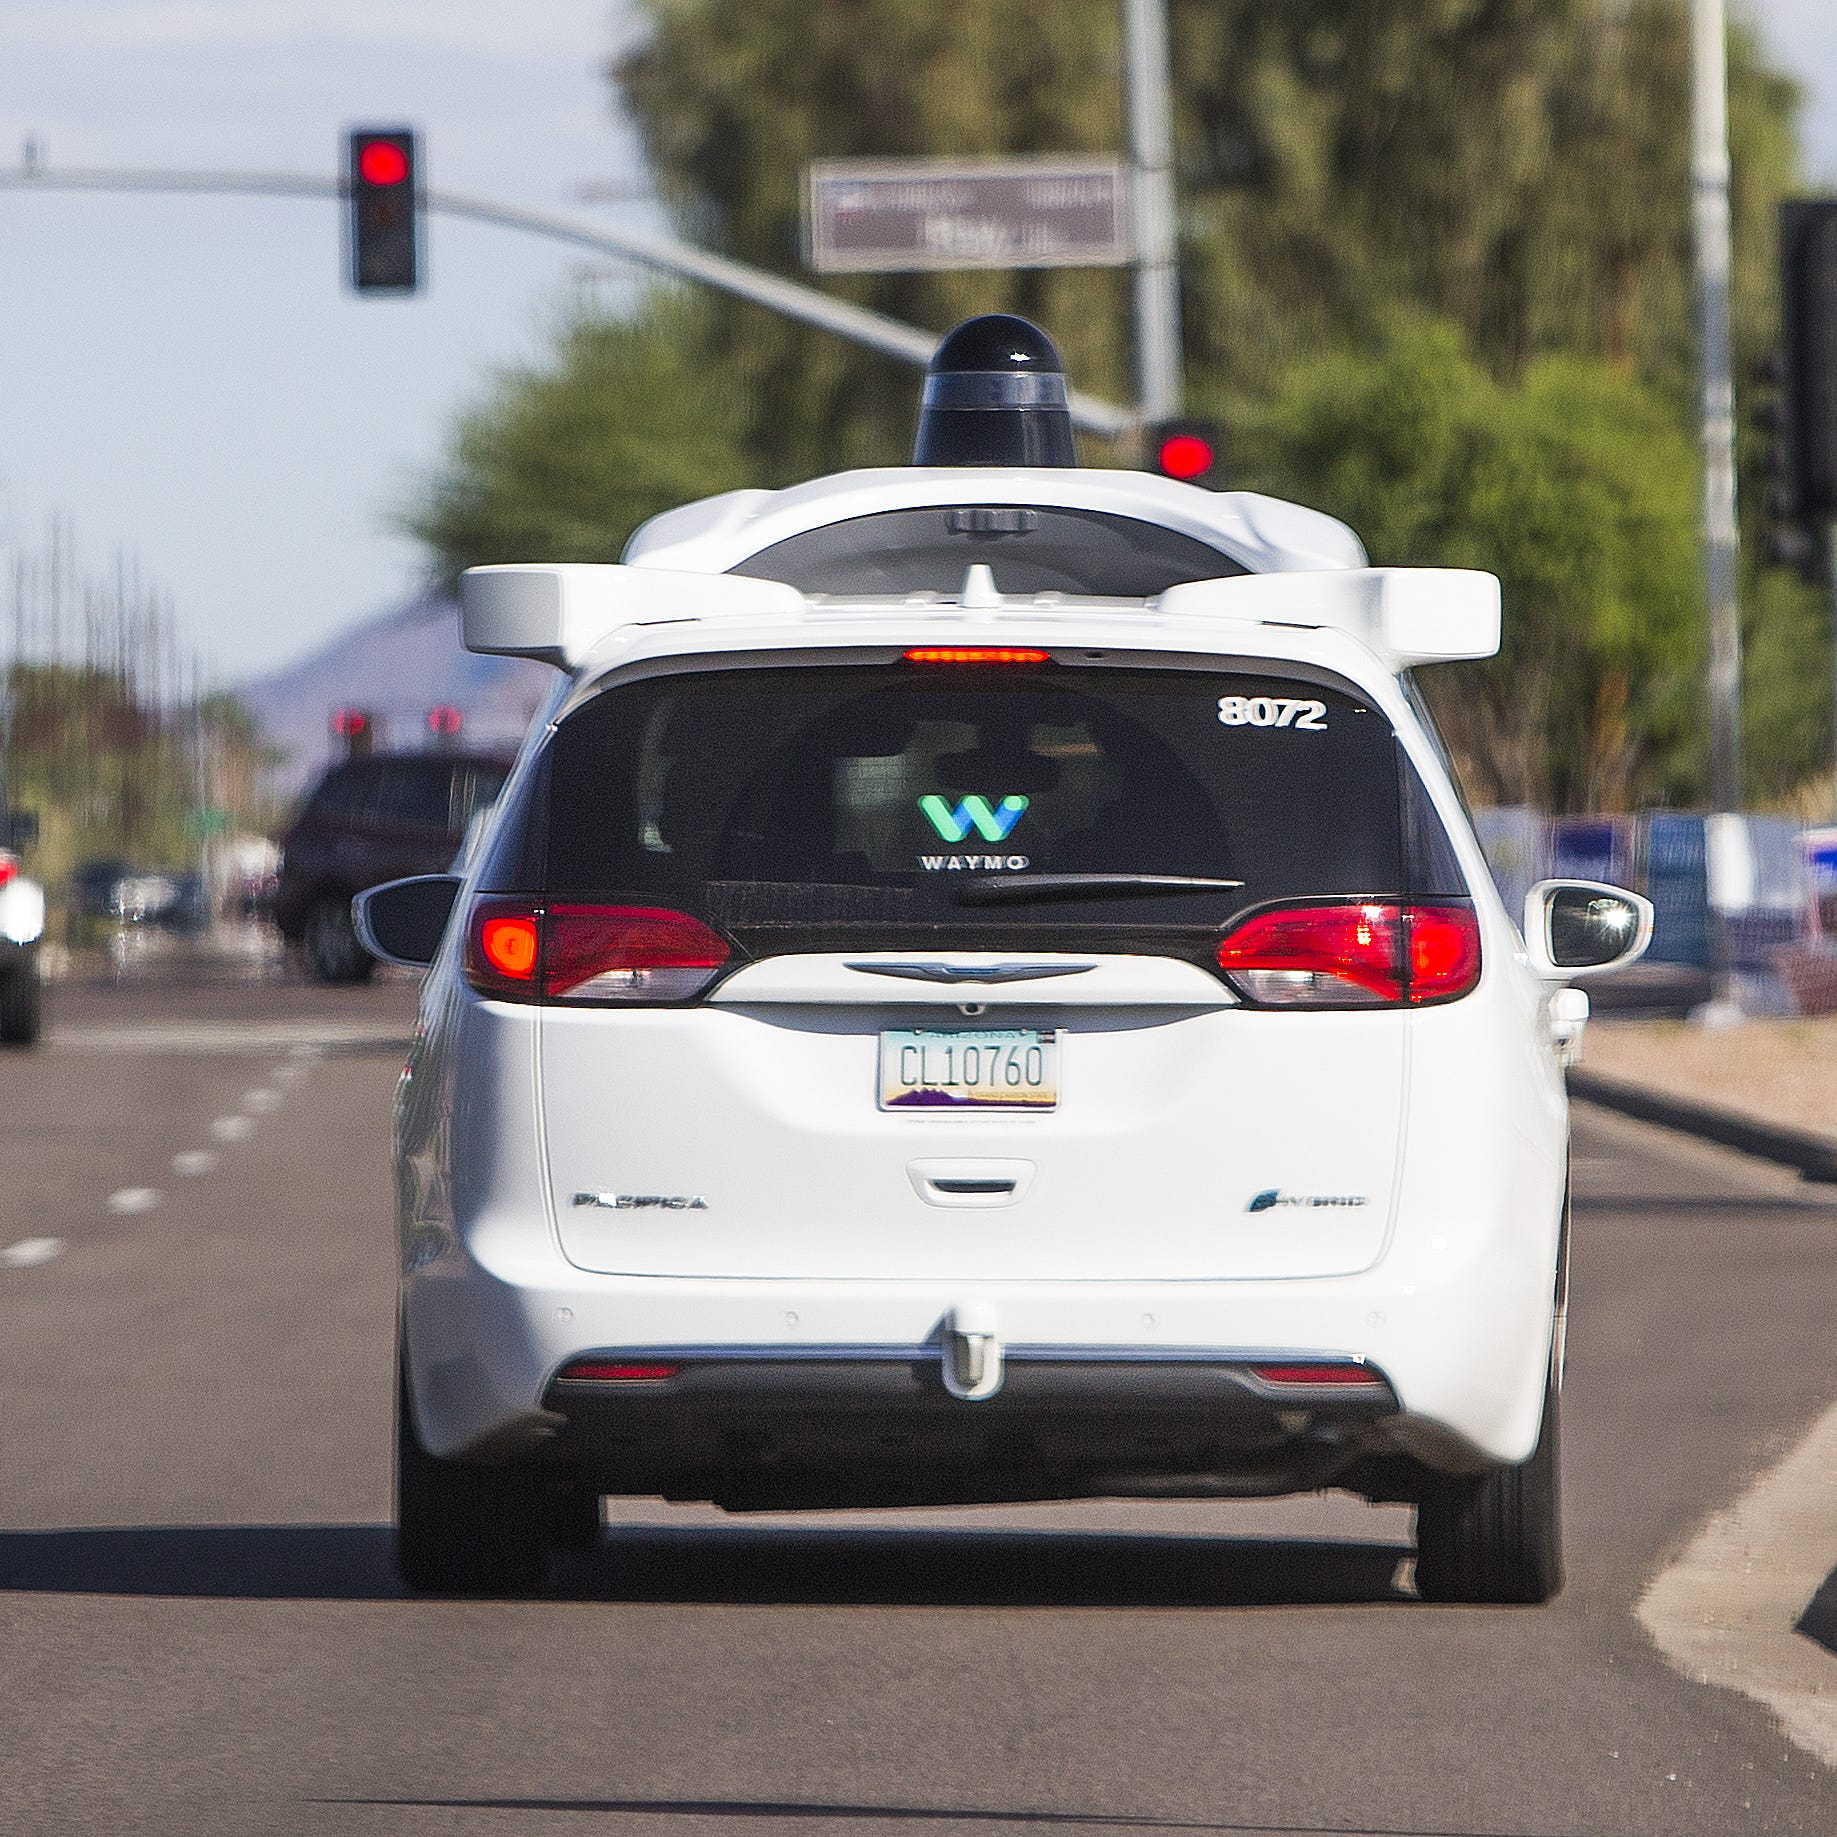 A slashed tire, a pointed gun, bullies on the road: Why do Waymo self-driving vans get so much hate?